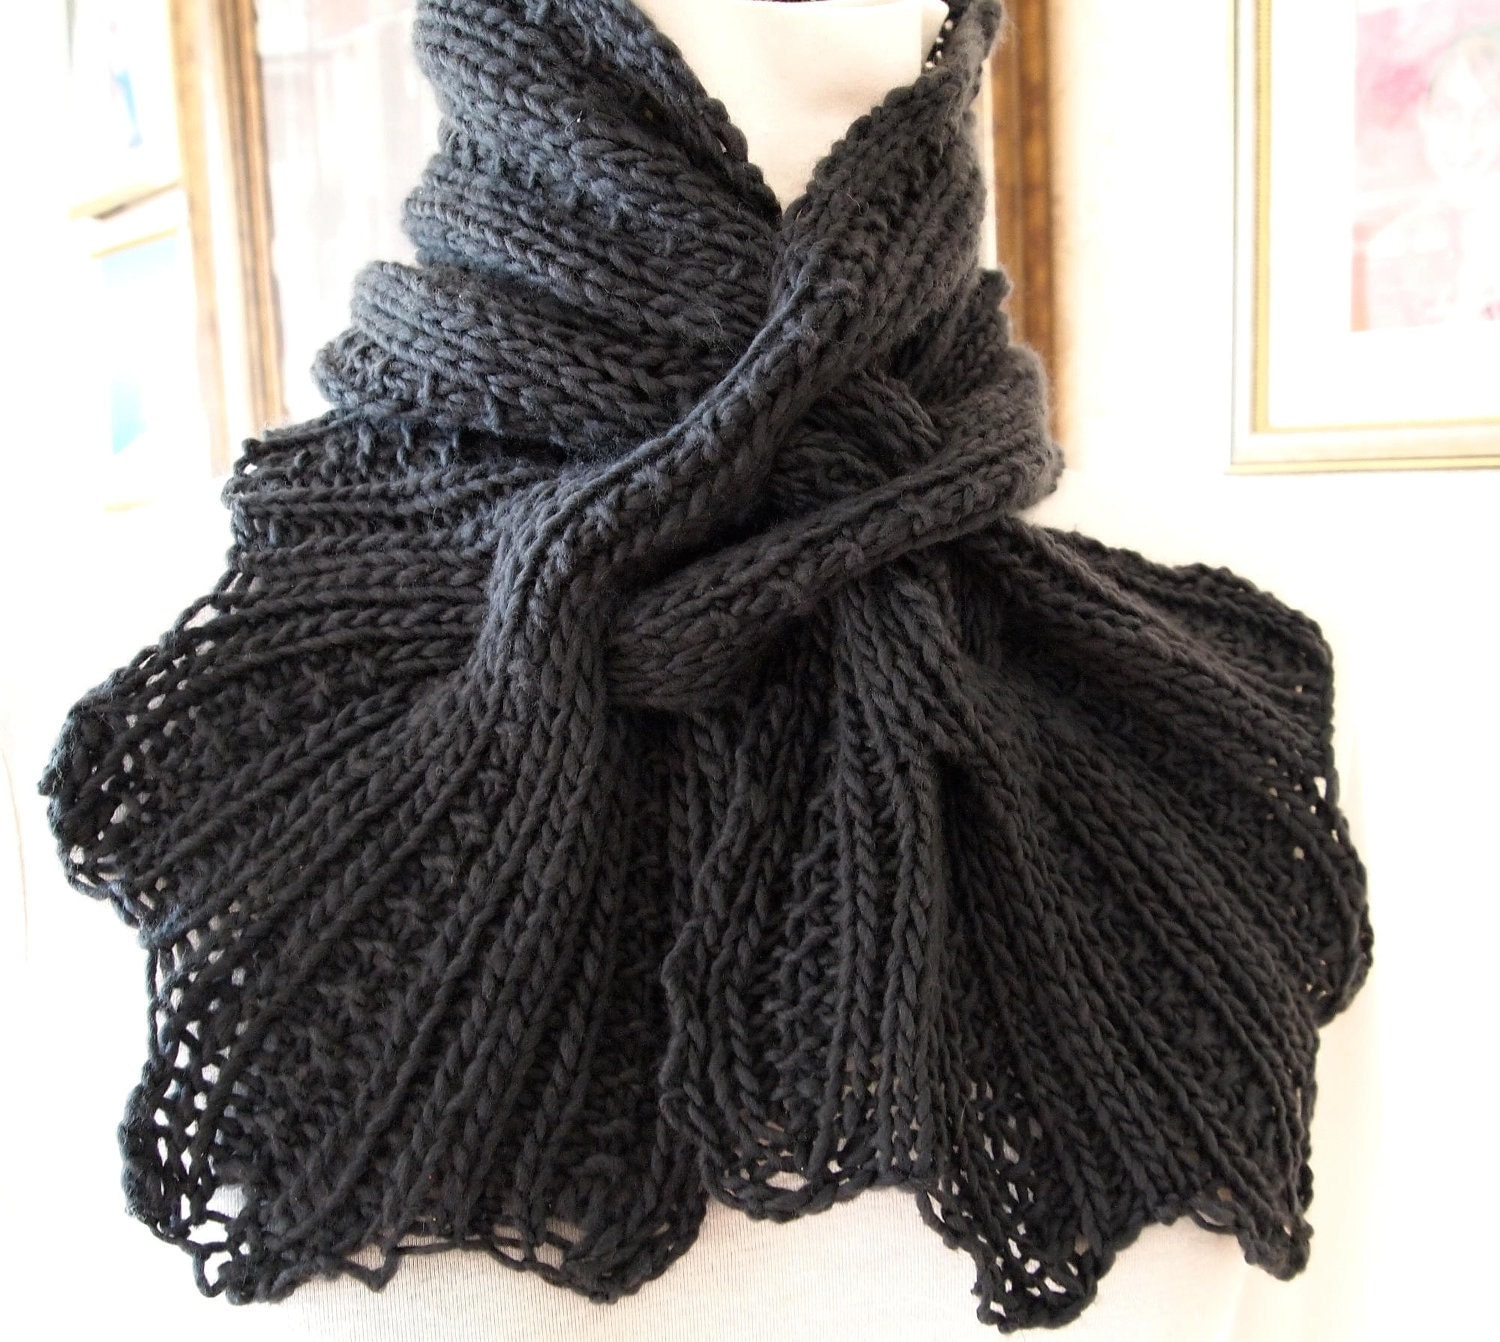 HAND KNIT SCARF PATTERNS   Free Patterns